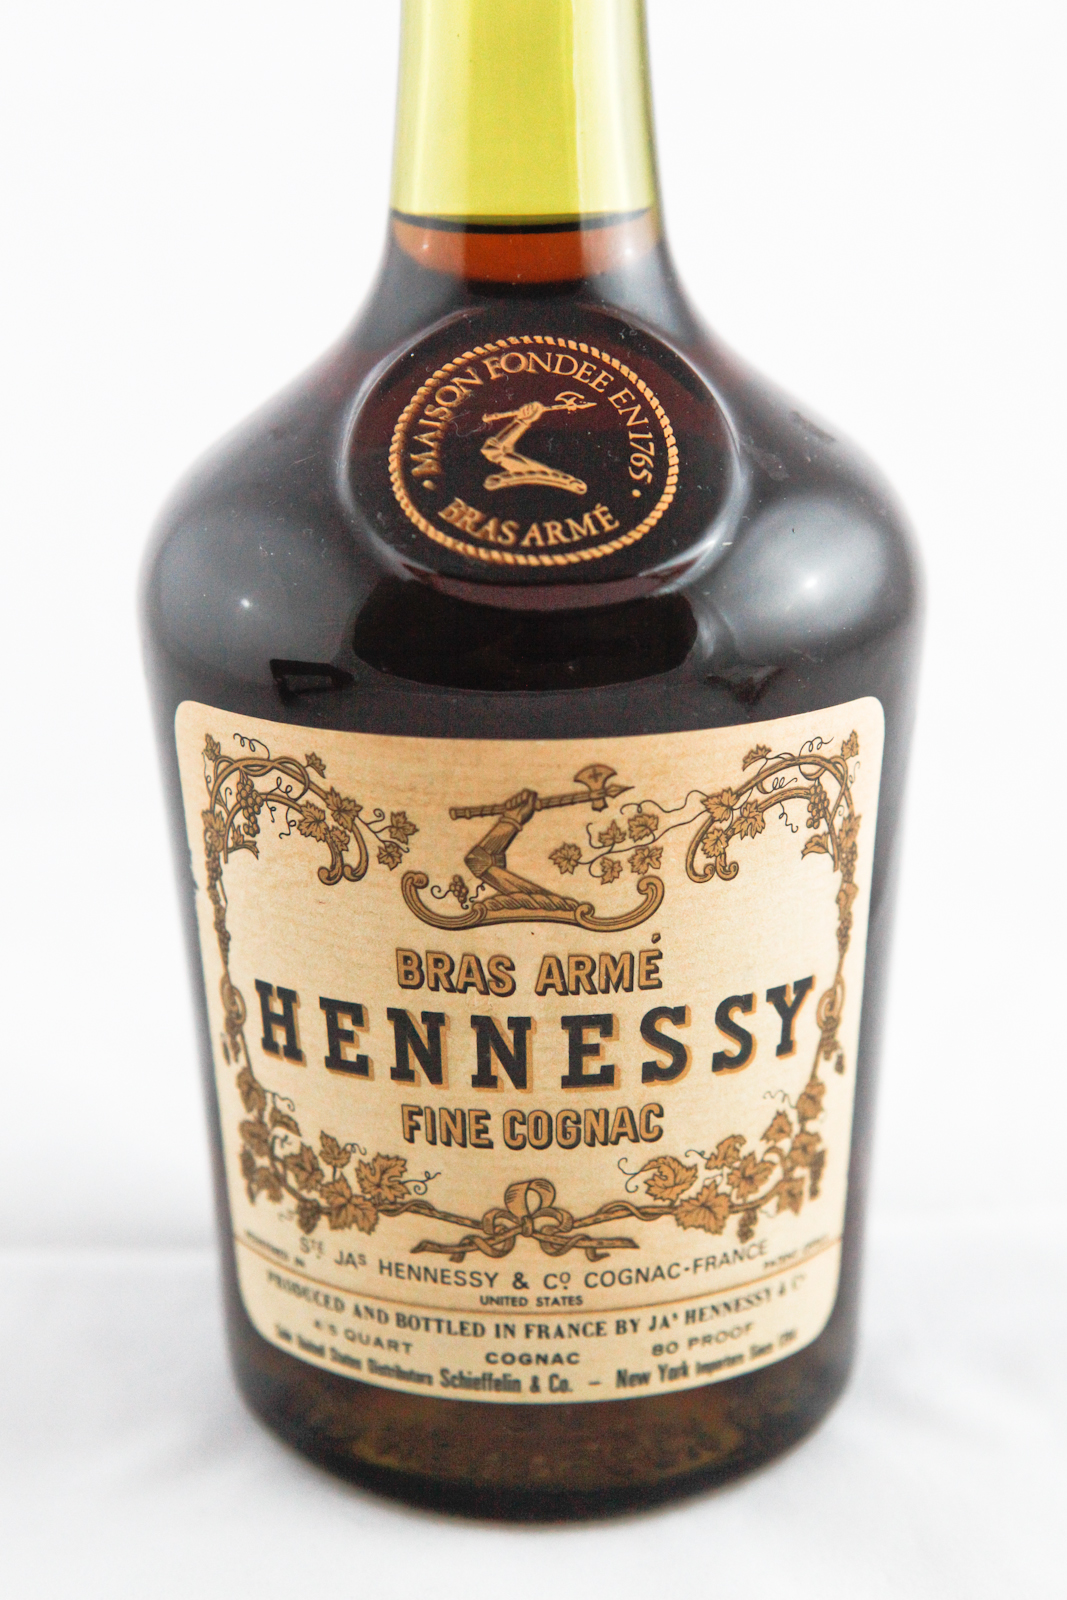 Hennessy Bras Arm 233 Fine Cognac To Offer Cognac Expert